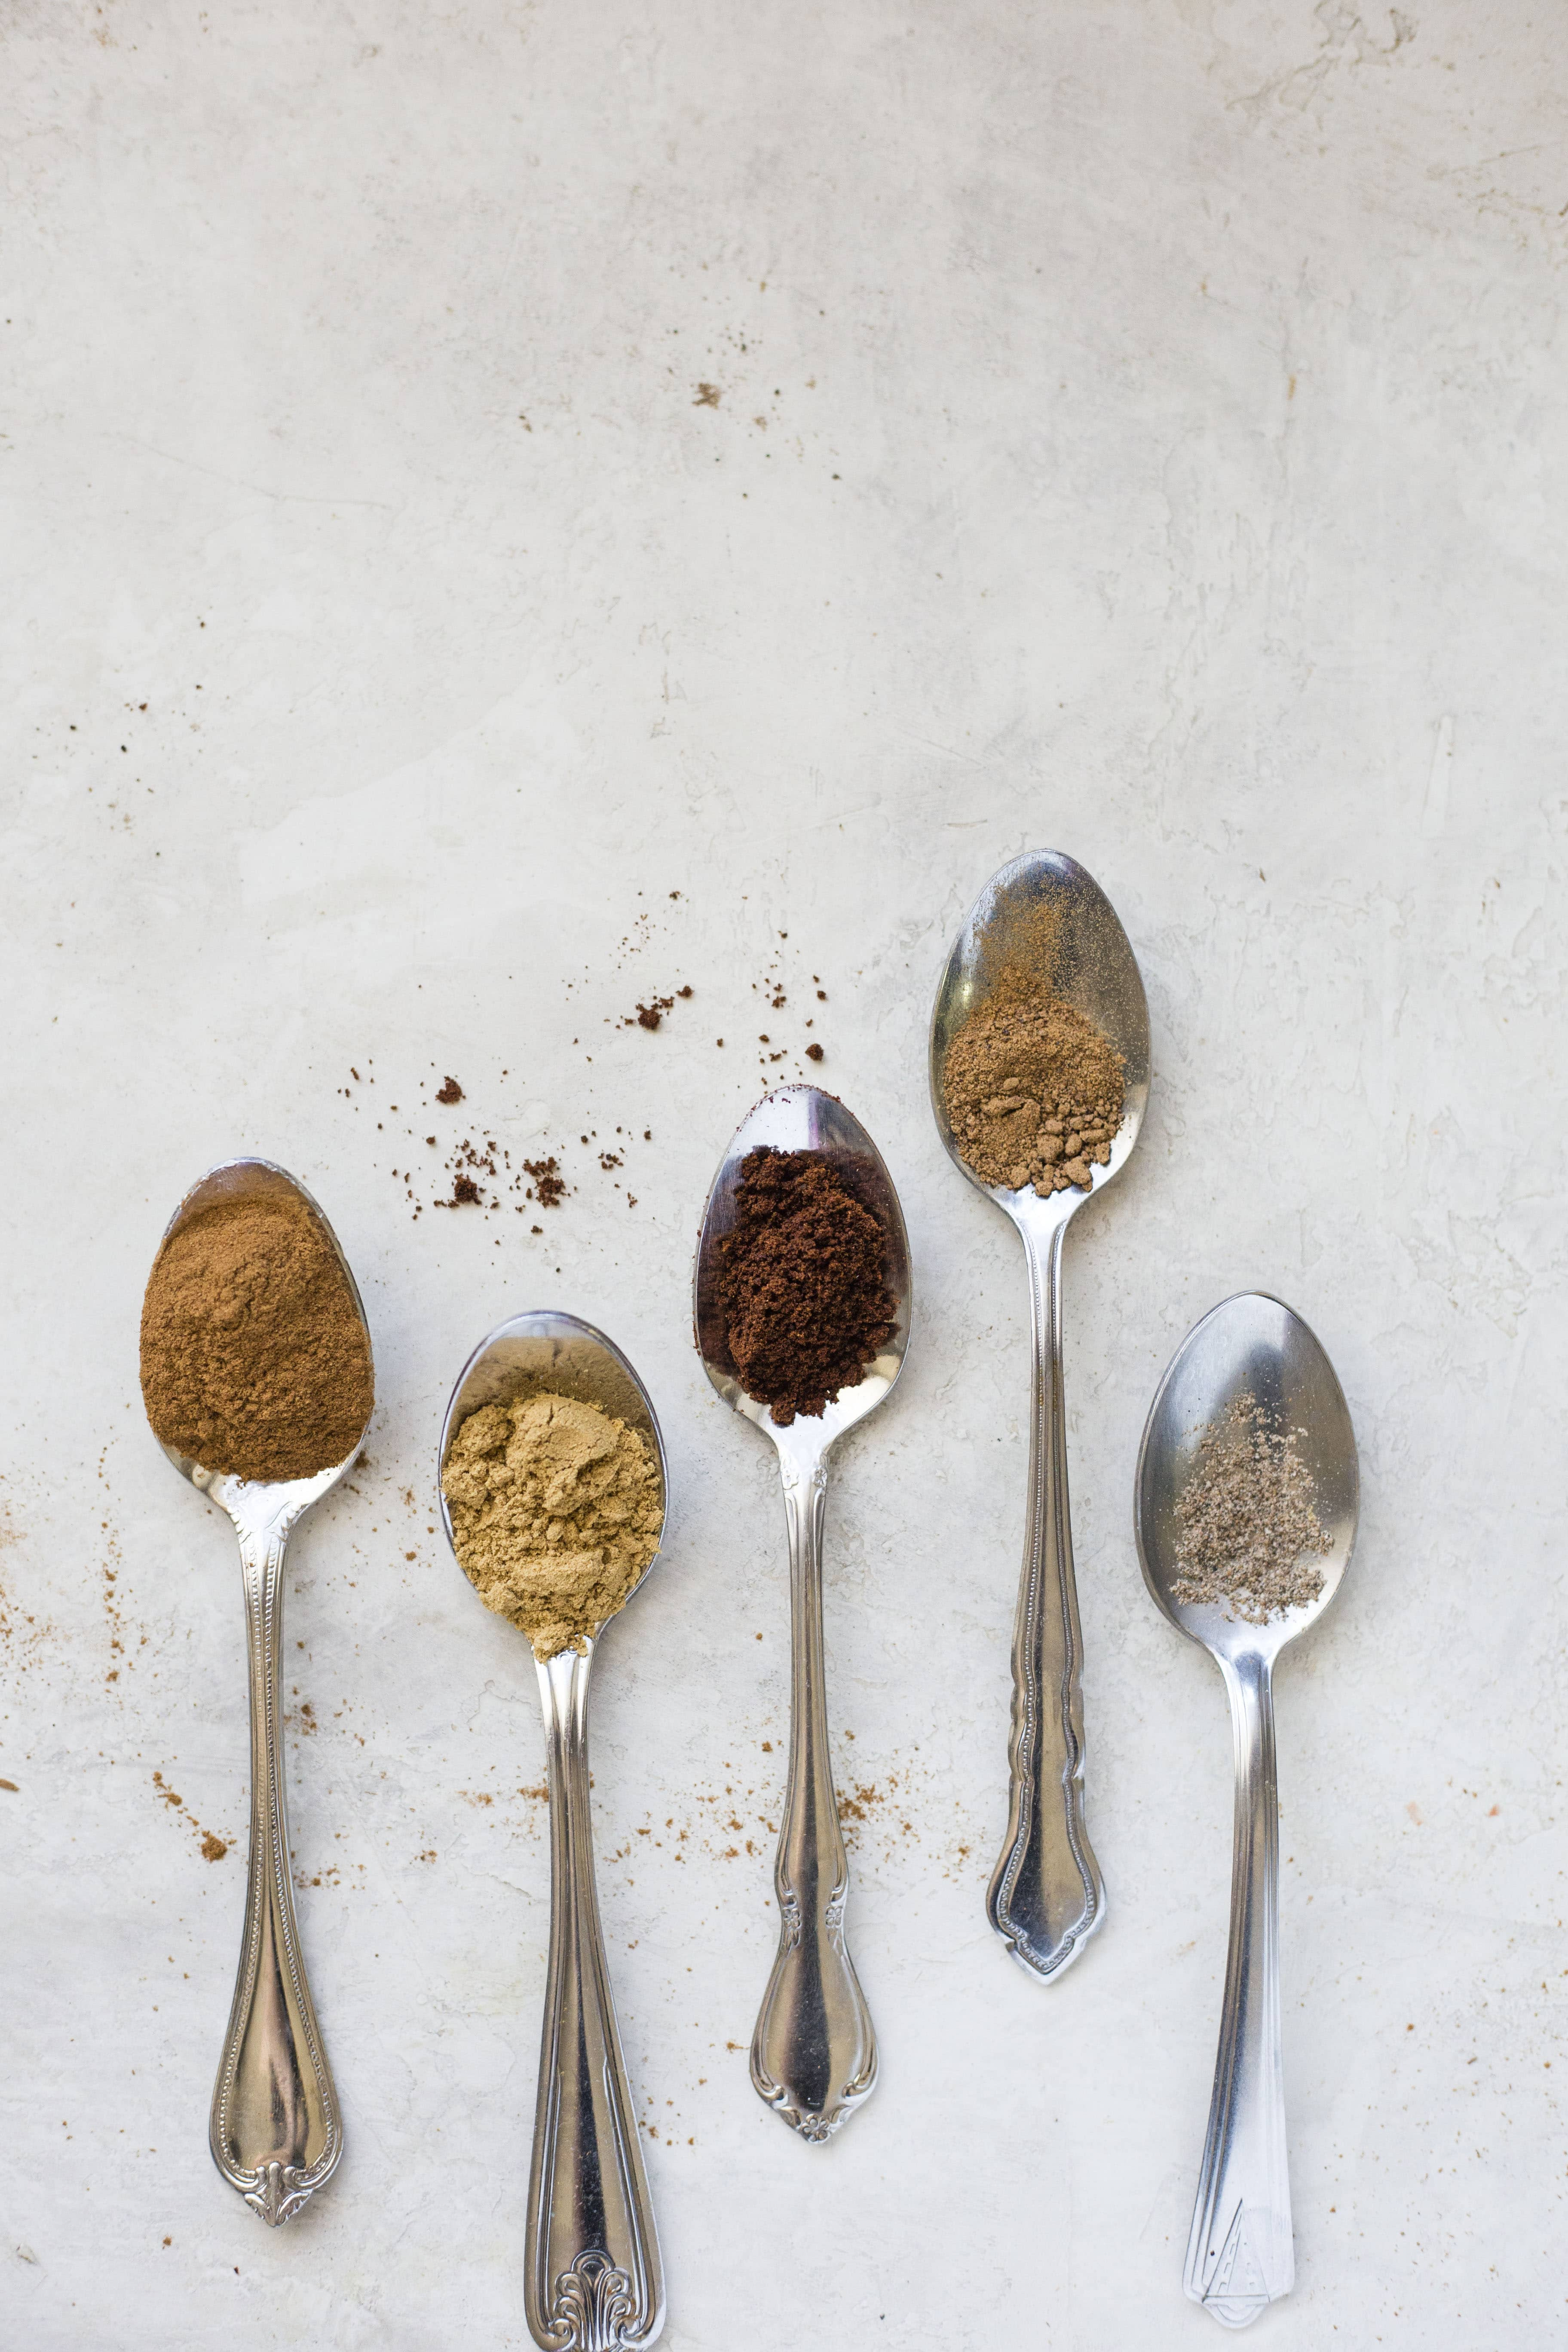 Here is exactly how you make your own homemade pumpkin pie spice! Blend together a few spices and you won't have to buy a jar ever again! It's economical, fun and you can decide how flavorful you want your pumpkin pie spice! I howsweeteats.com #pumpkin #pie #spice